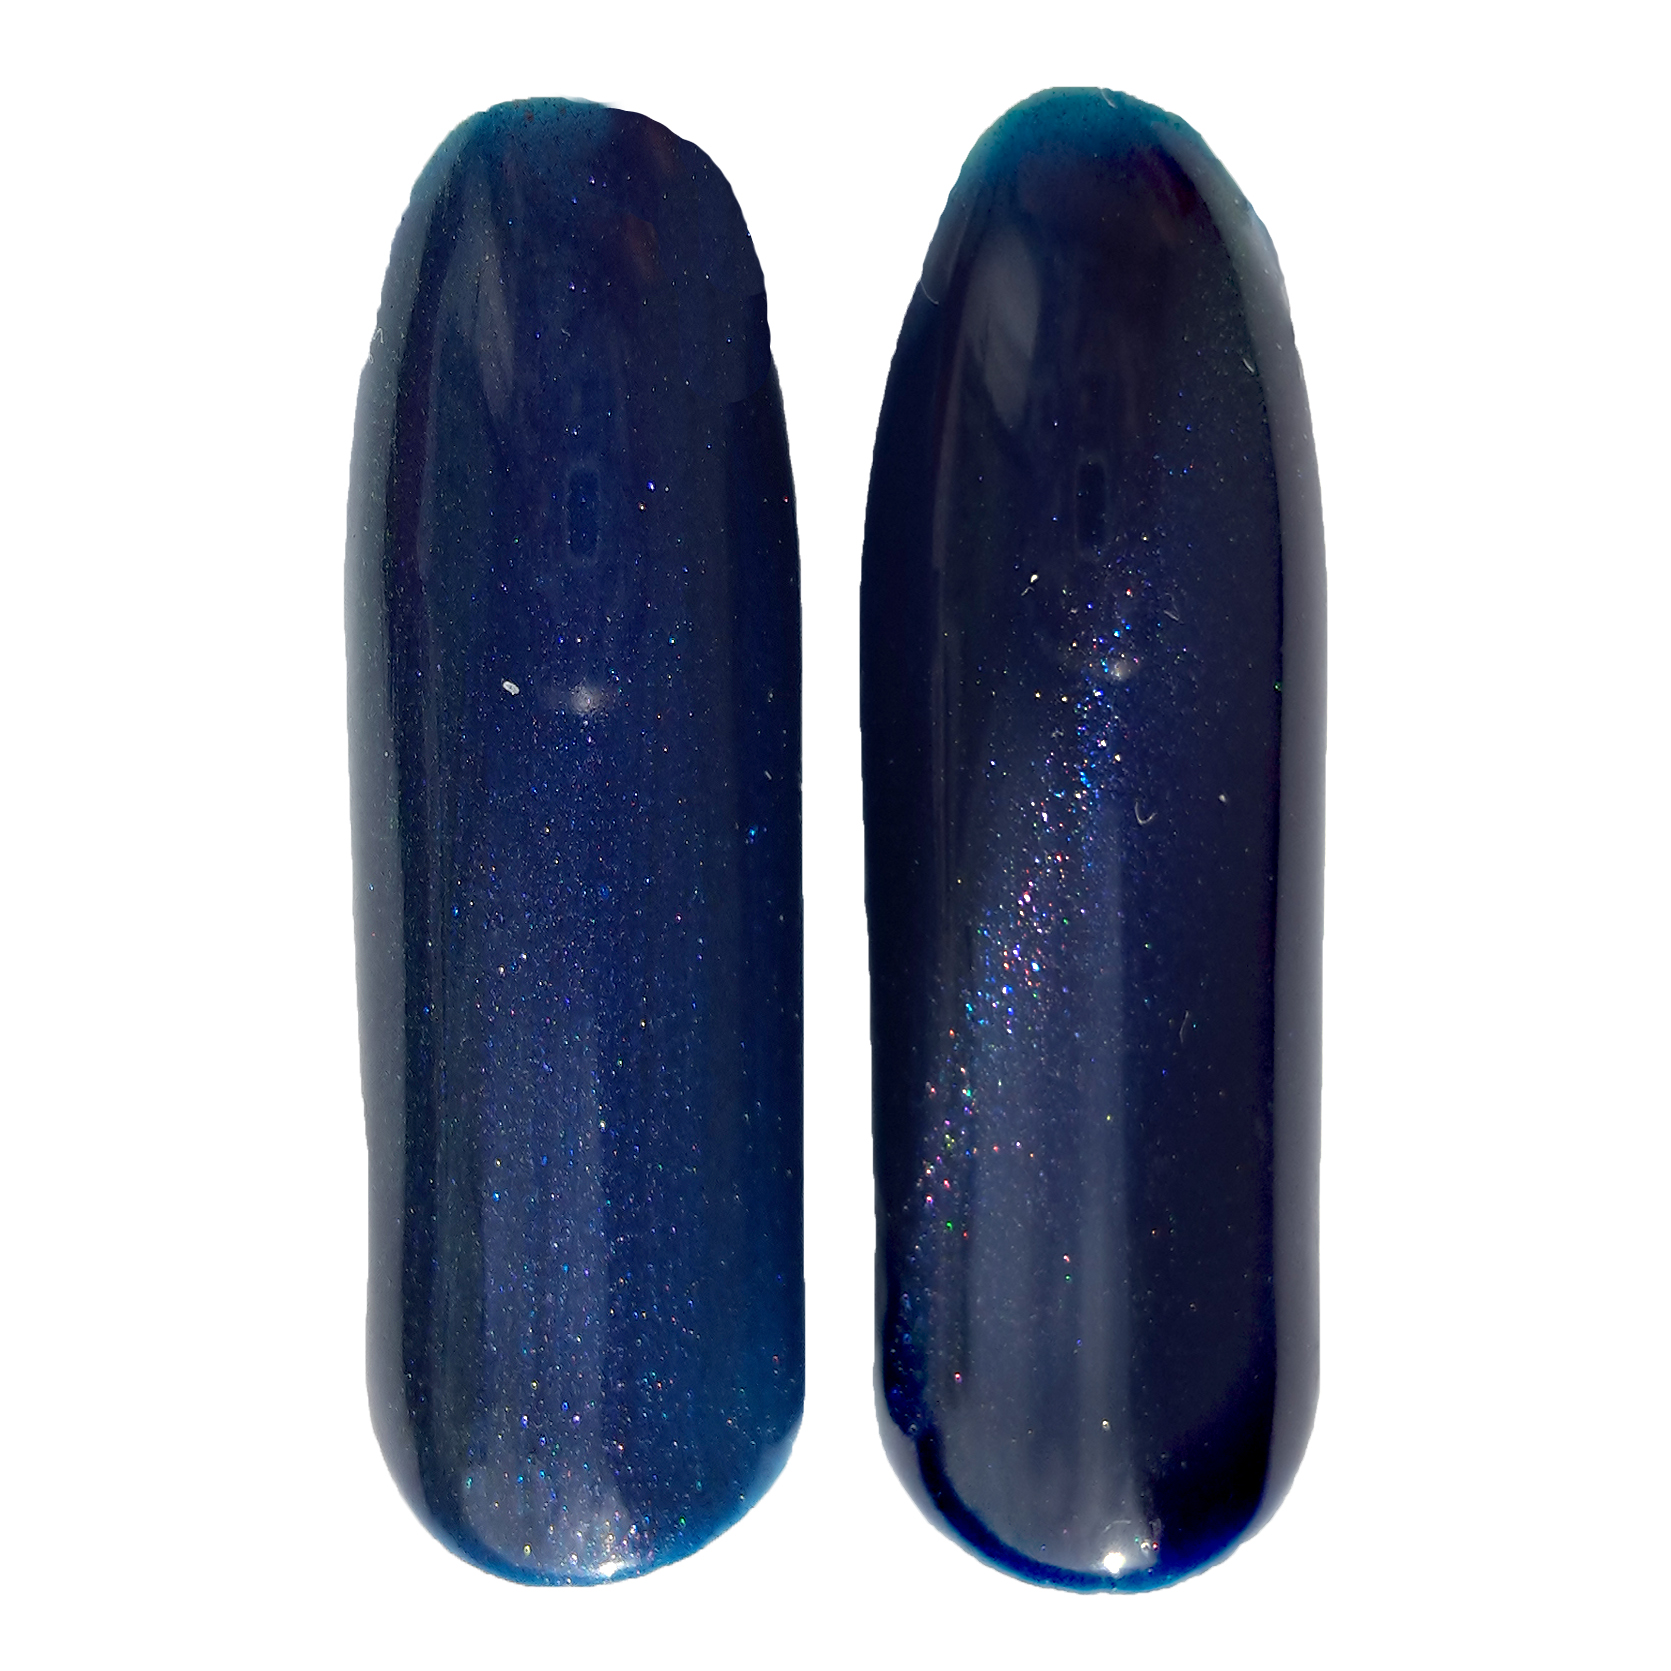 UV Gellack Cat Eye Illusion Royal Blau 15 ml.